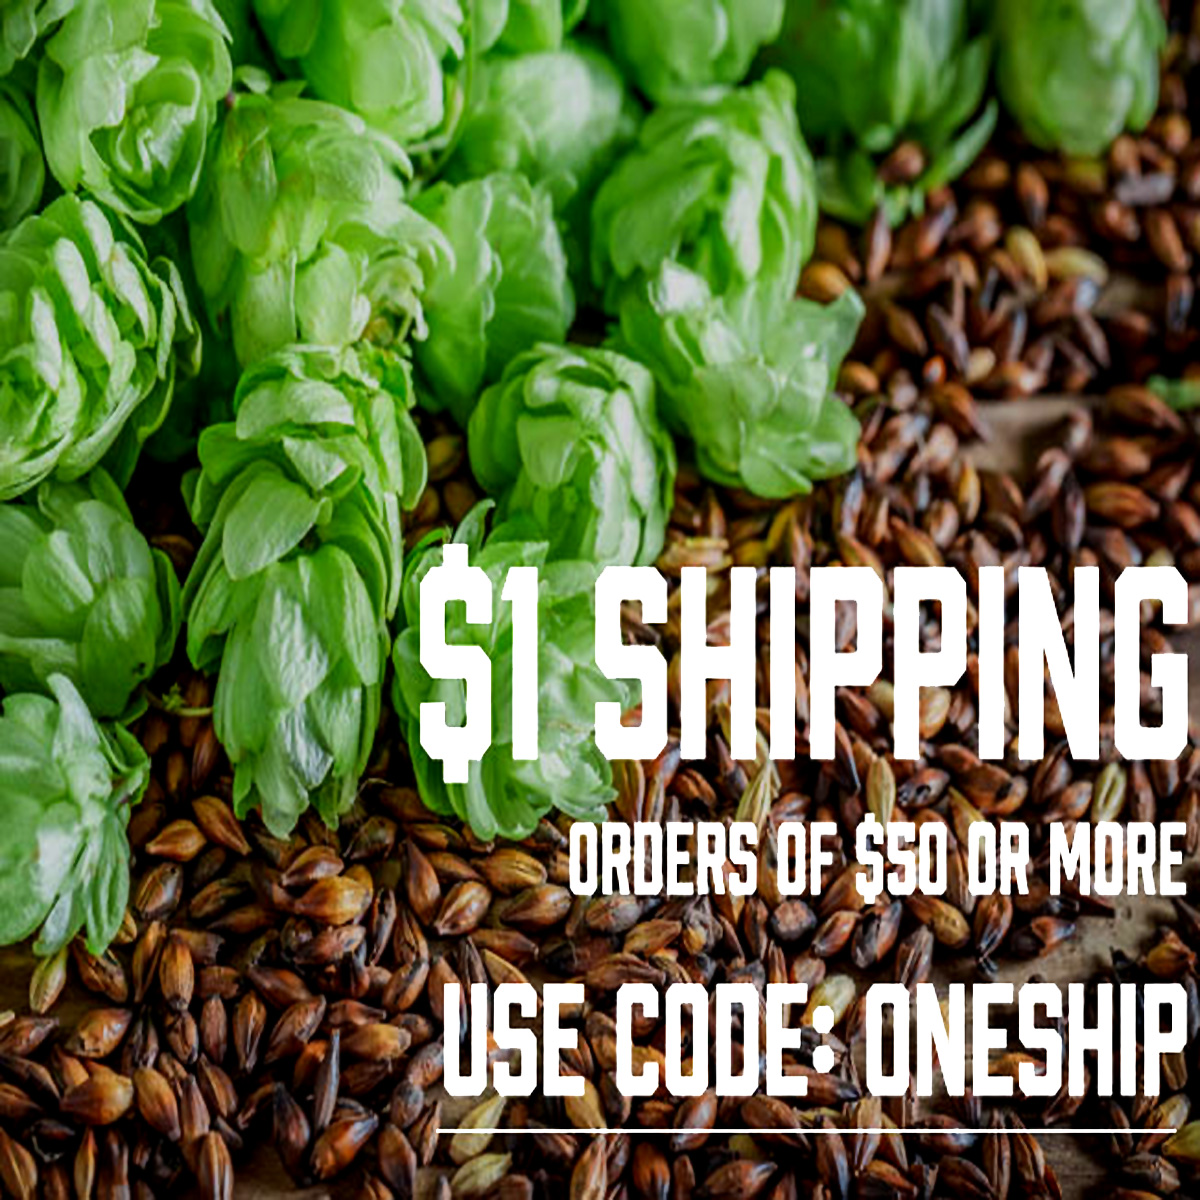 Great Fermentations Orders over $50 Ship for Just $1 at GreatFermentations.com With Promo Code Coupon Code